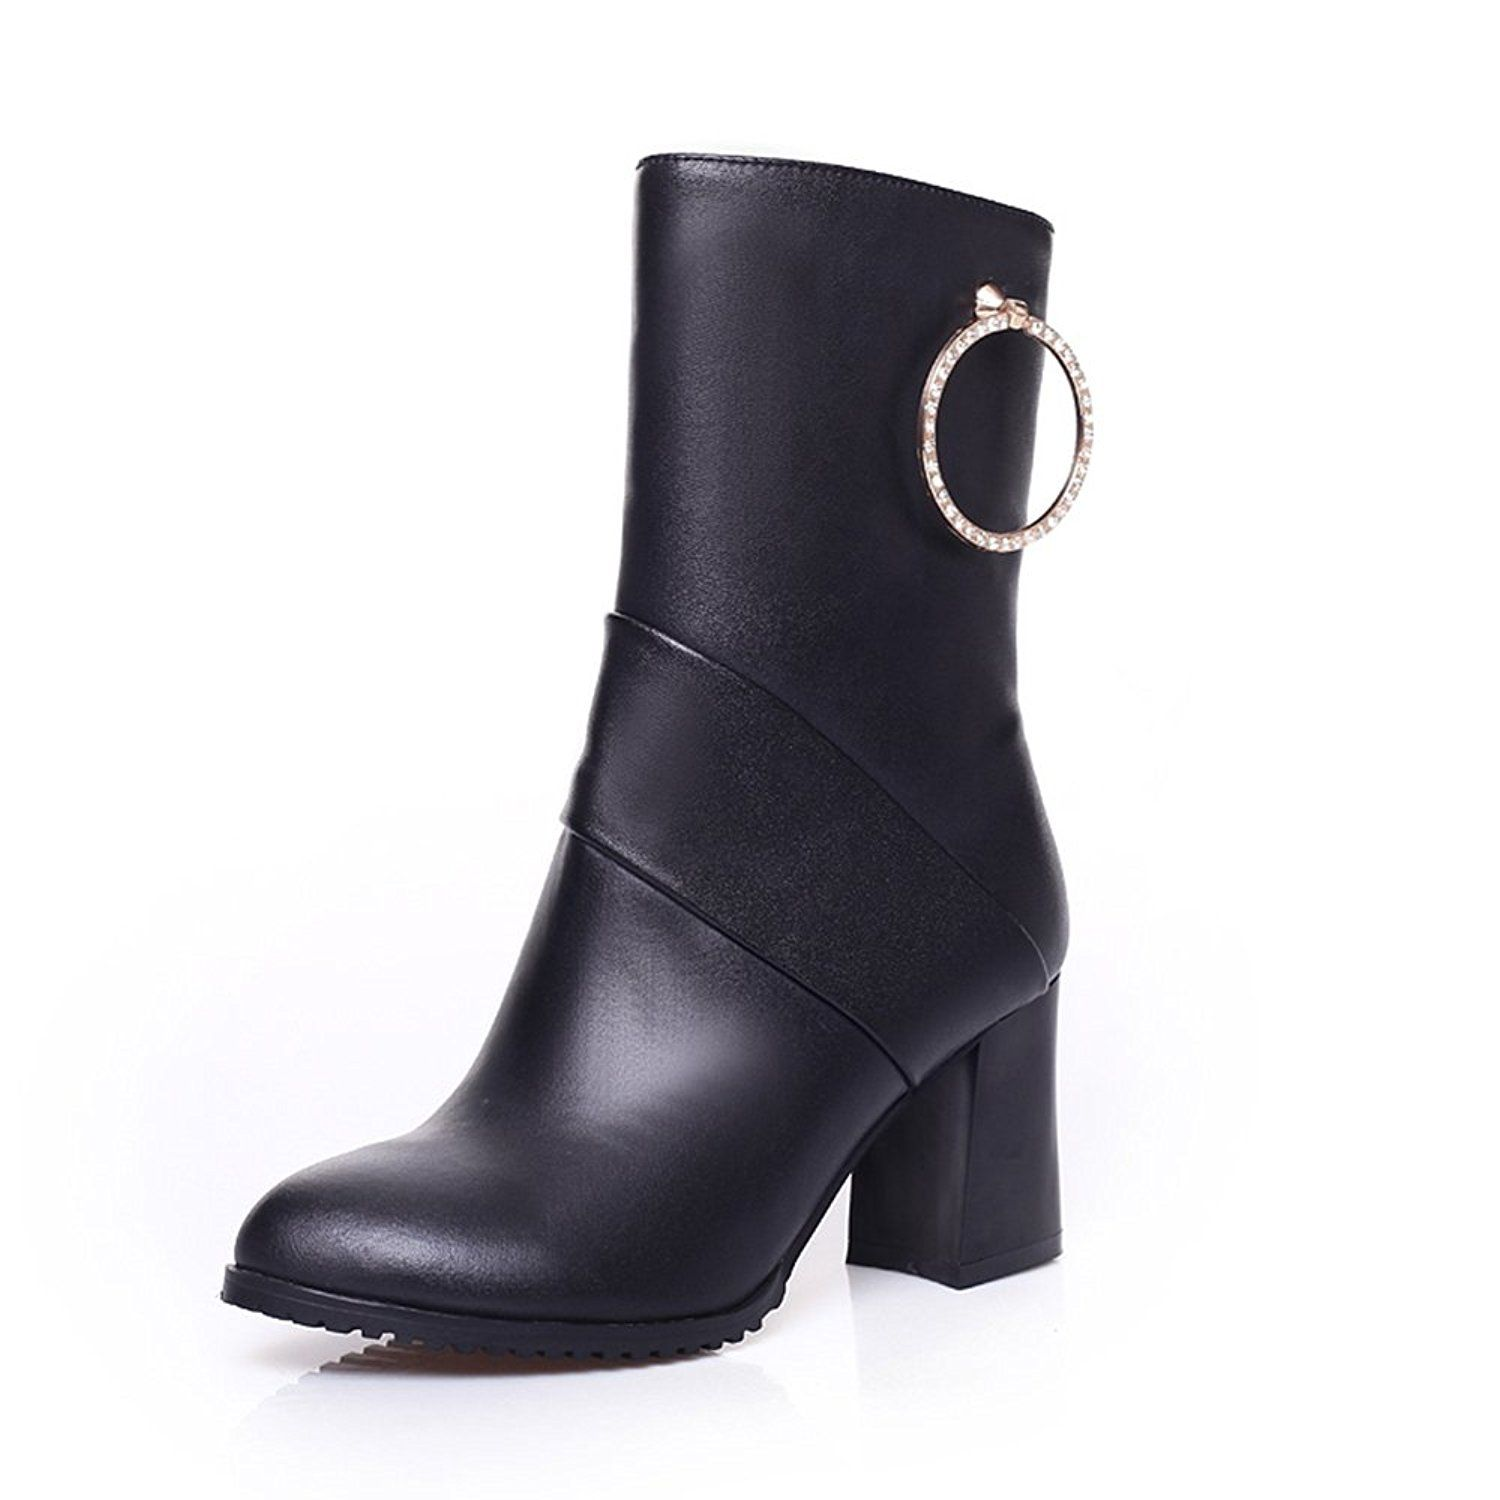 Women's Unique Mid Chunky Heel Round Toe Buckle Ankle High Boots With Side Zipper